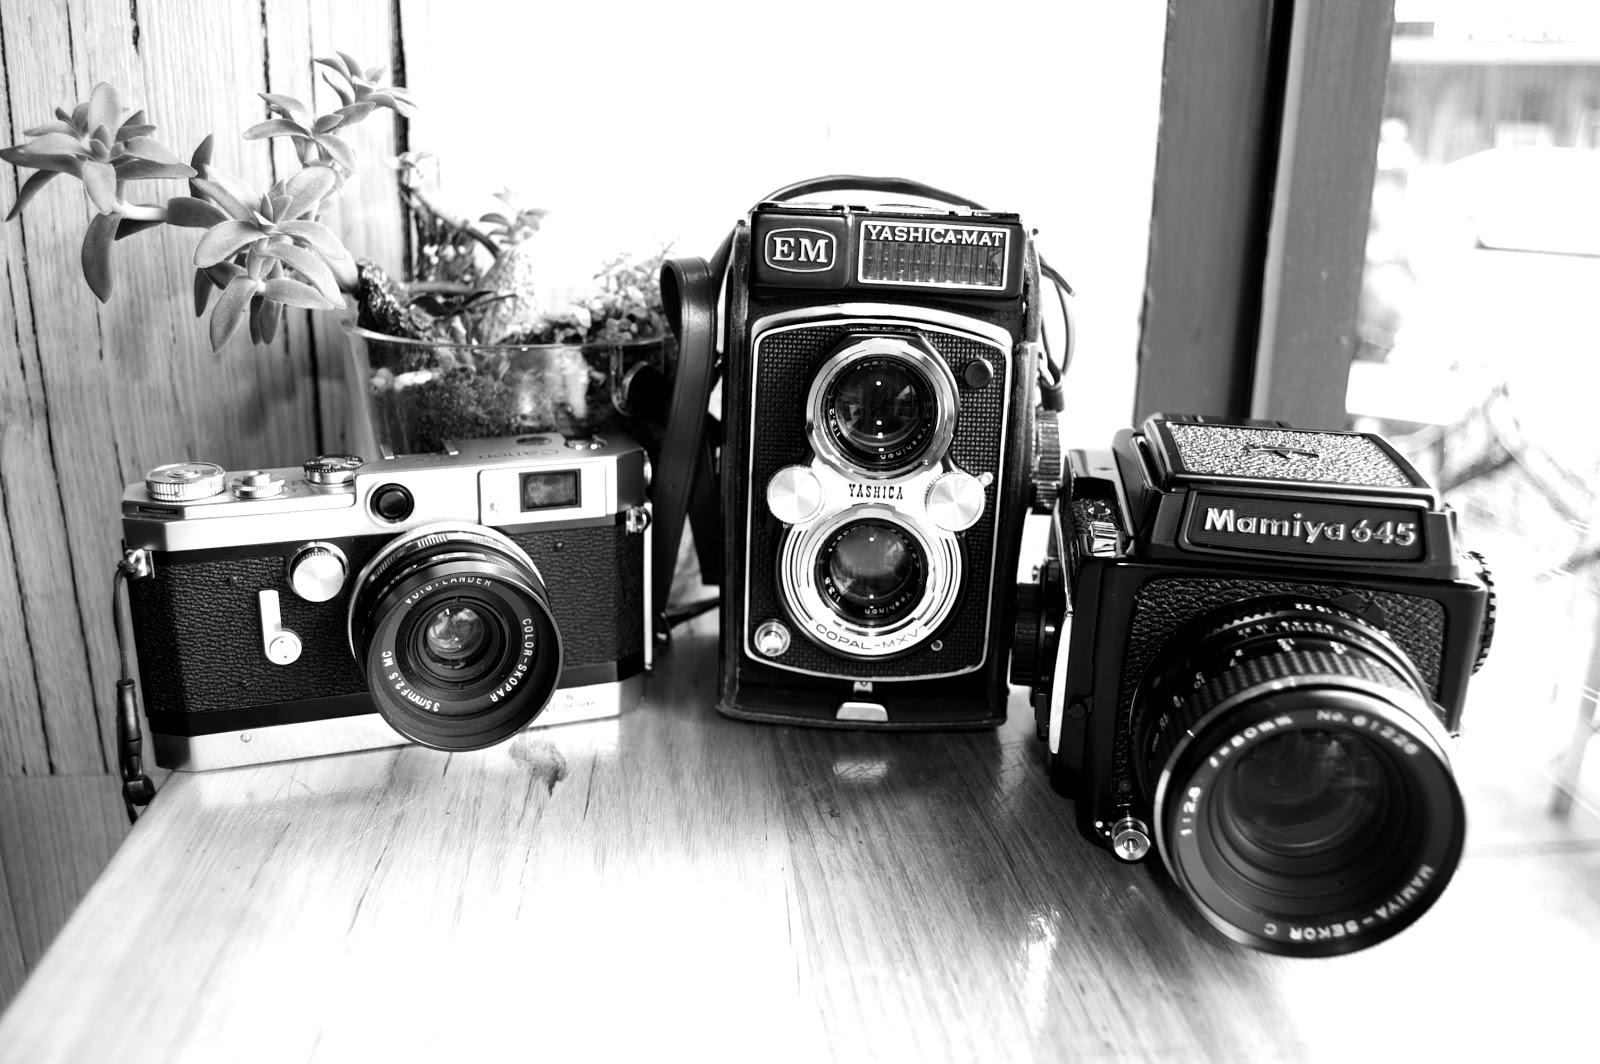 Left to right:  Canon VT Deluxe,Yashica Mat EM and Mamiya 645 1000s